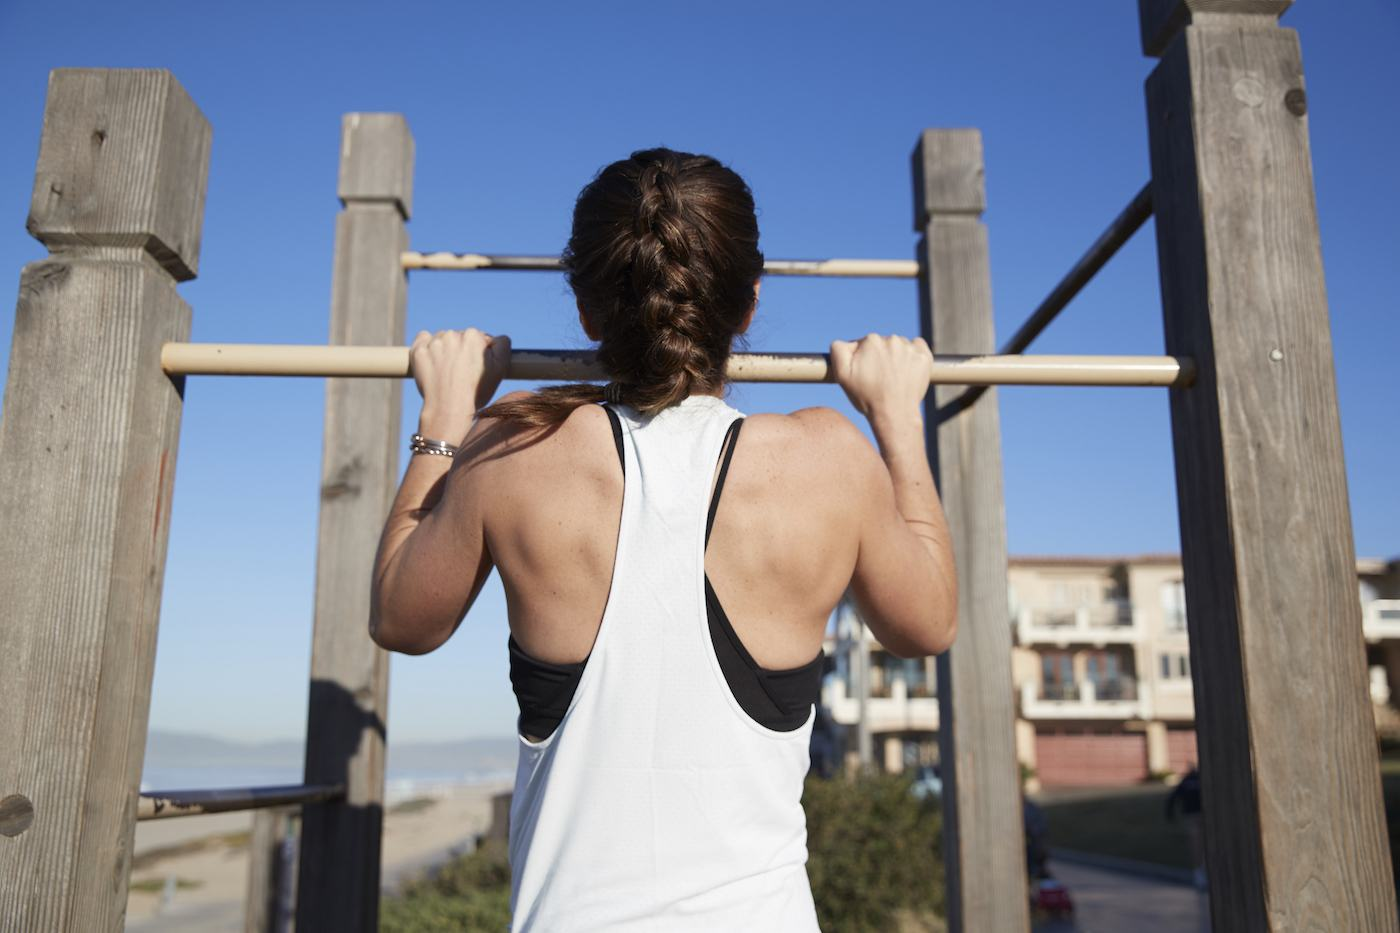 Thumbnail for Can't do a single pull-up? Here's how to get strong enough to do 50